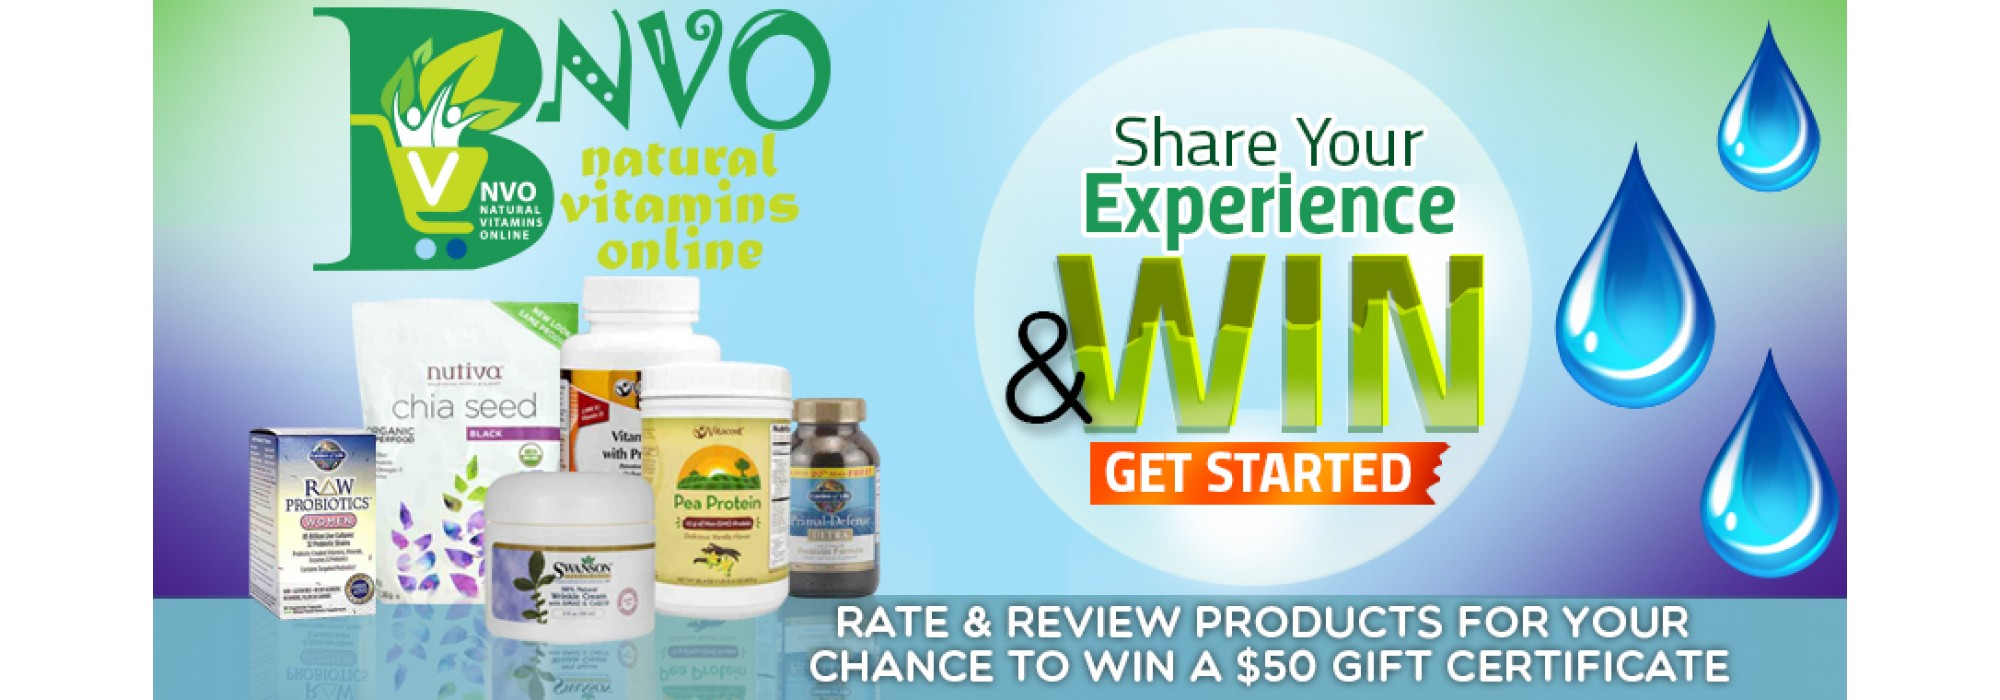 NVO Share and Win gift certificate